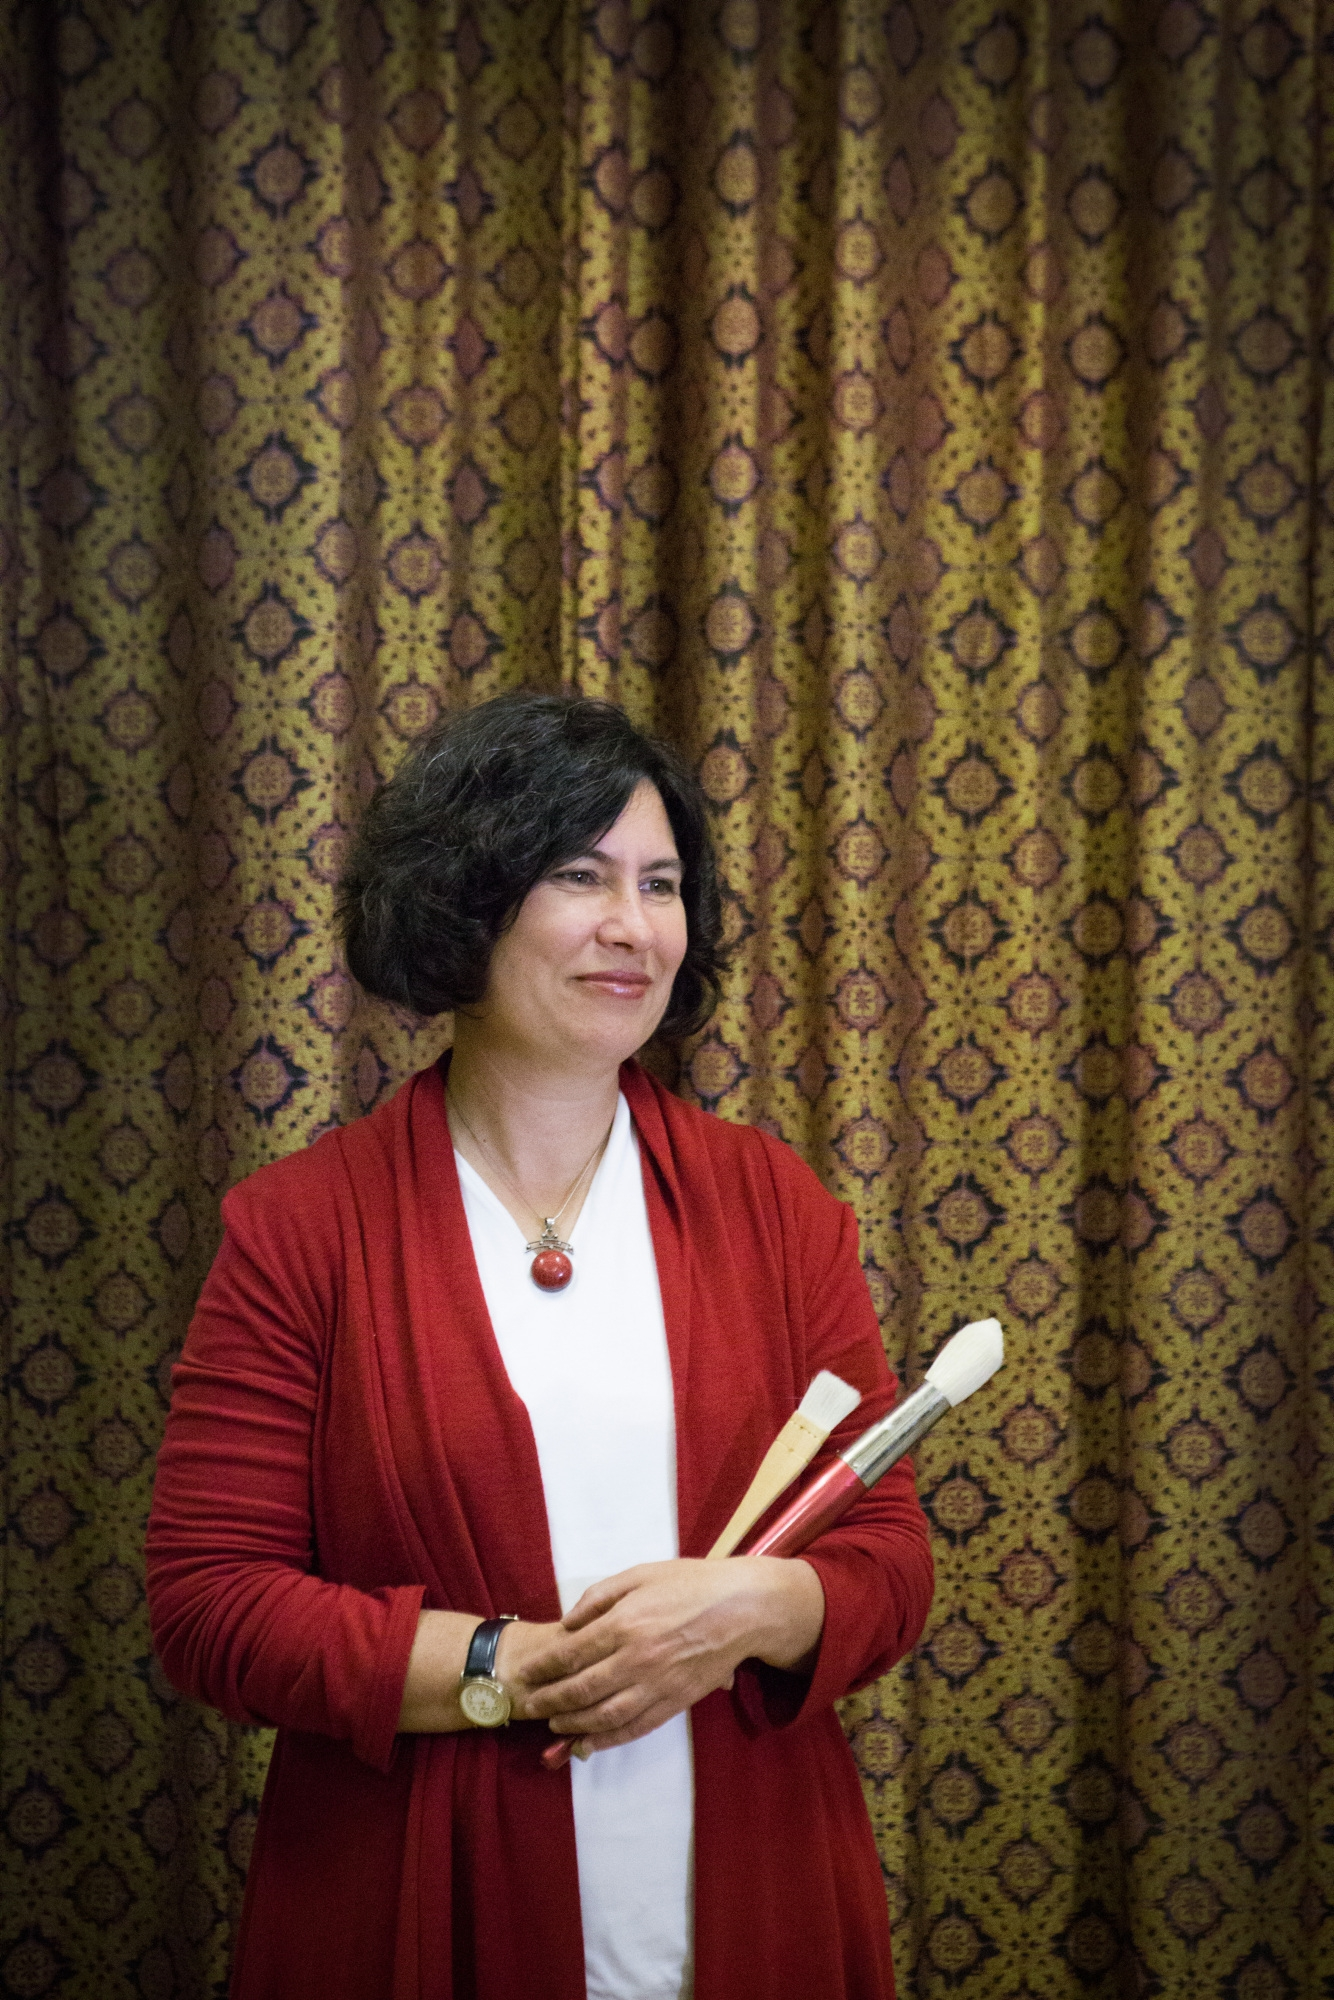 Woman in red cardigan and white top in front of patterned fabric, holding brushes.